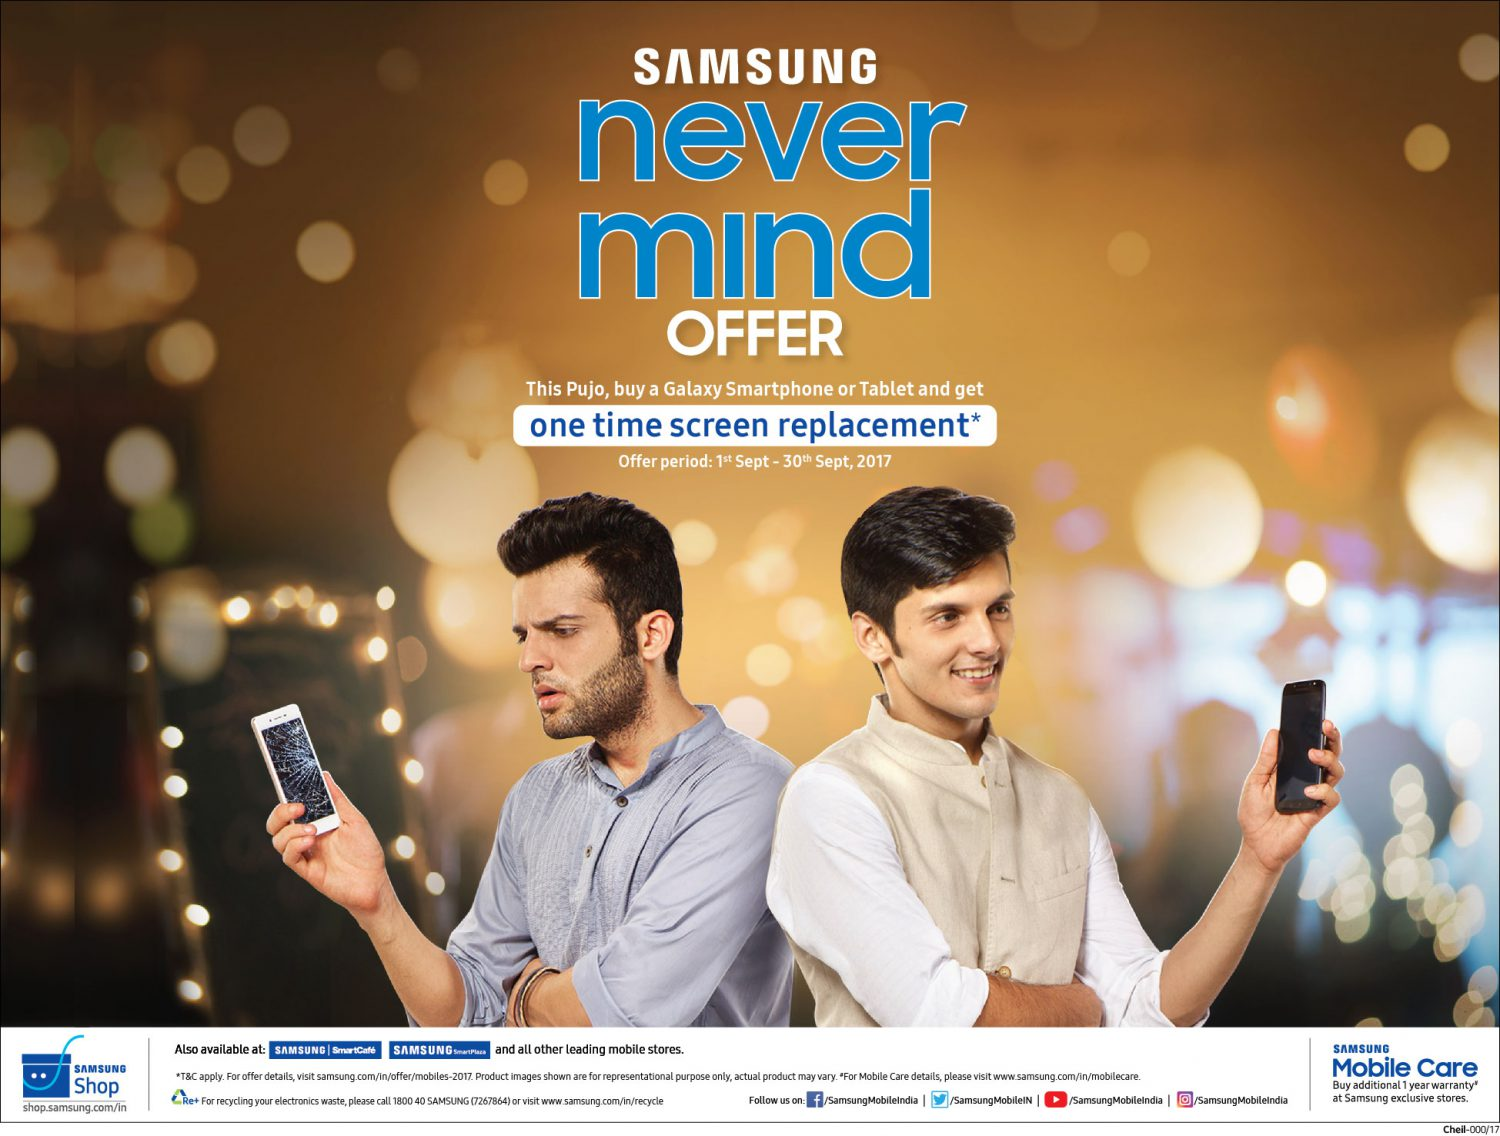 Samsung launch 'Never Mind offer' for west Bengal and North east India